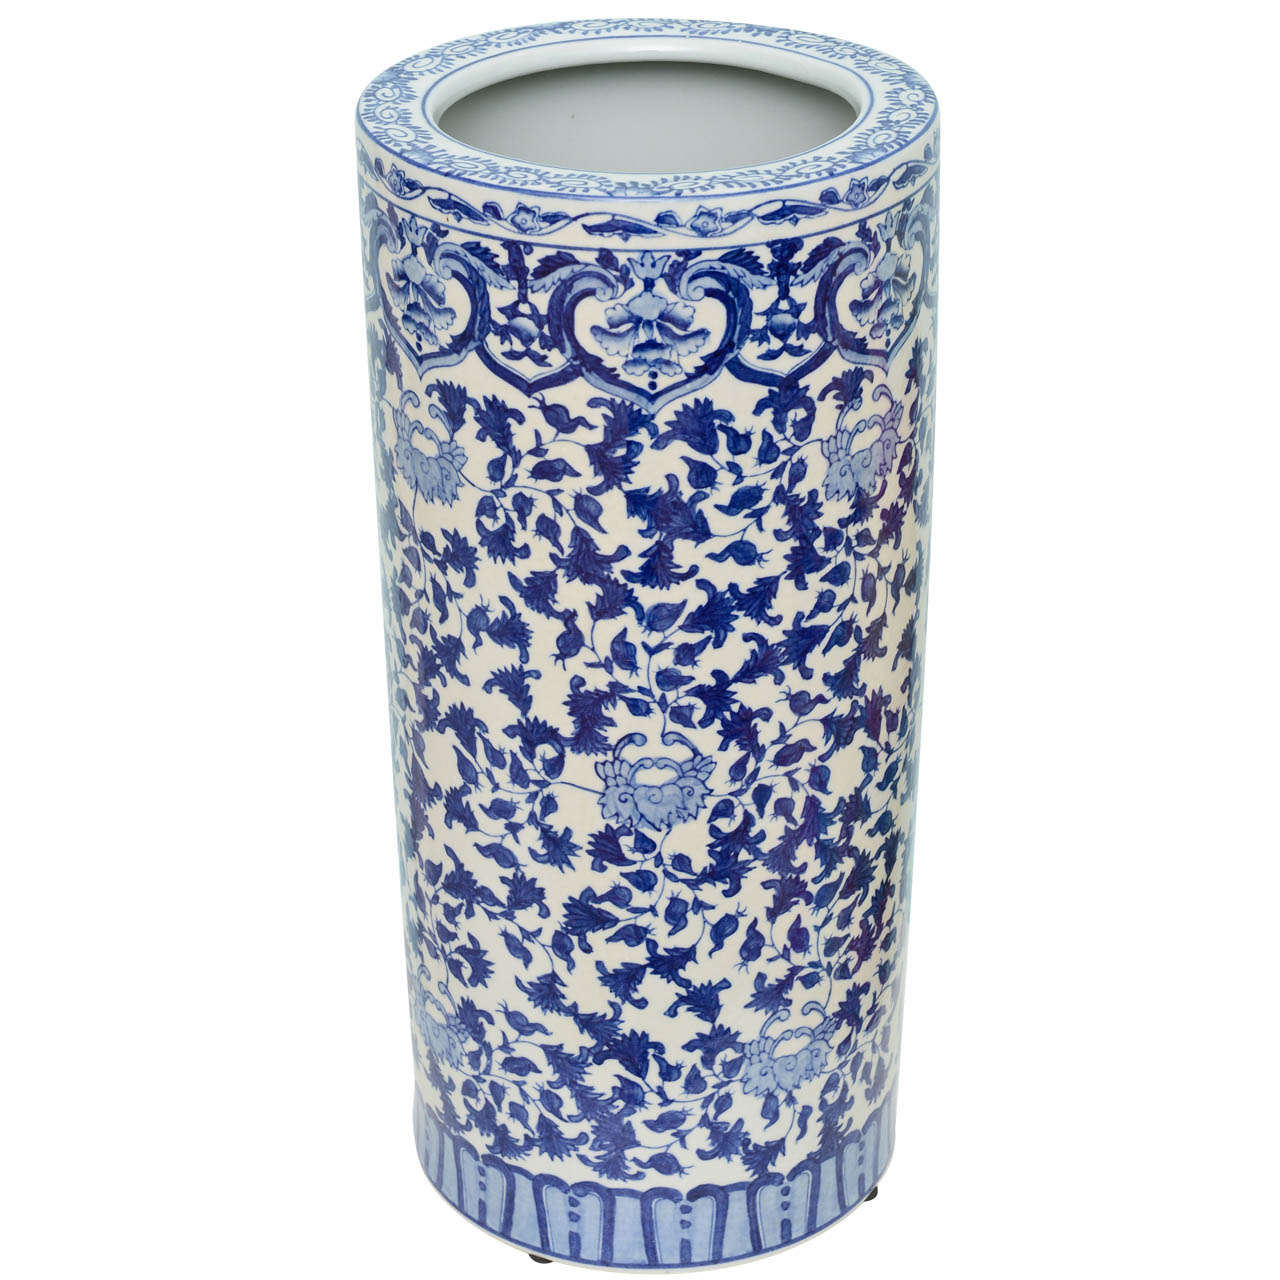 Umbrella Stand Blue And White: A Chinese Blue And White Porcelain Umbrella Stand At 1stdibs